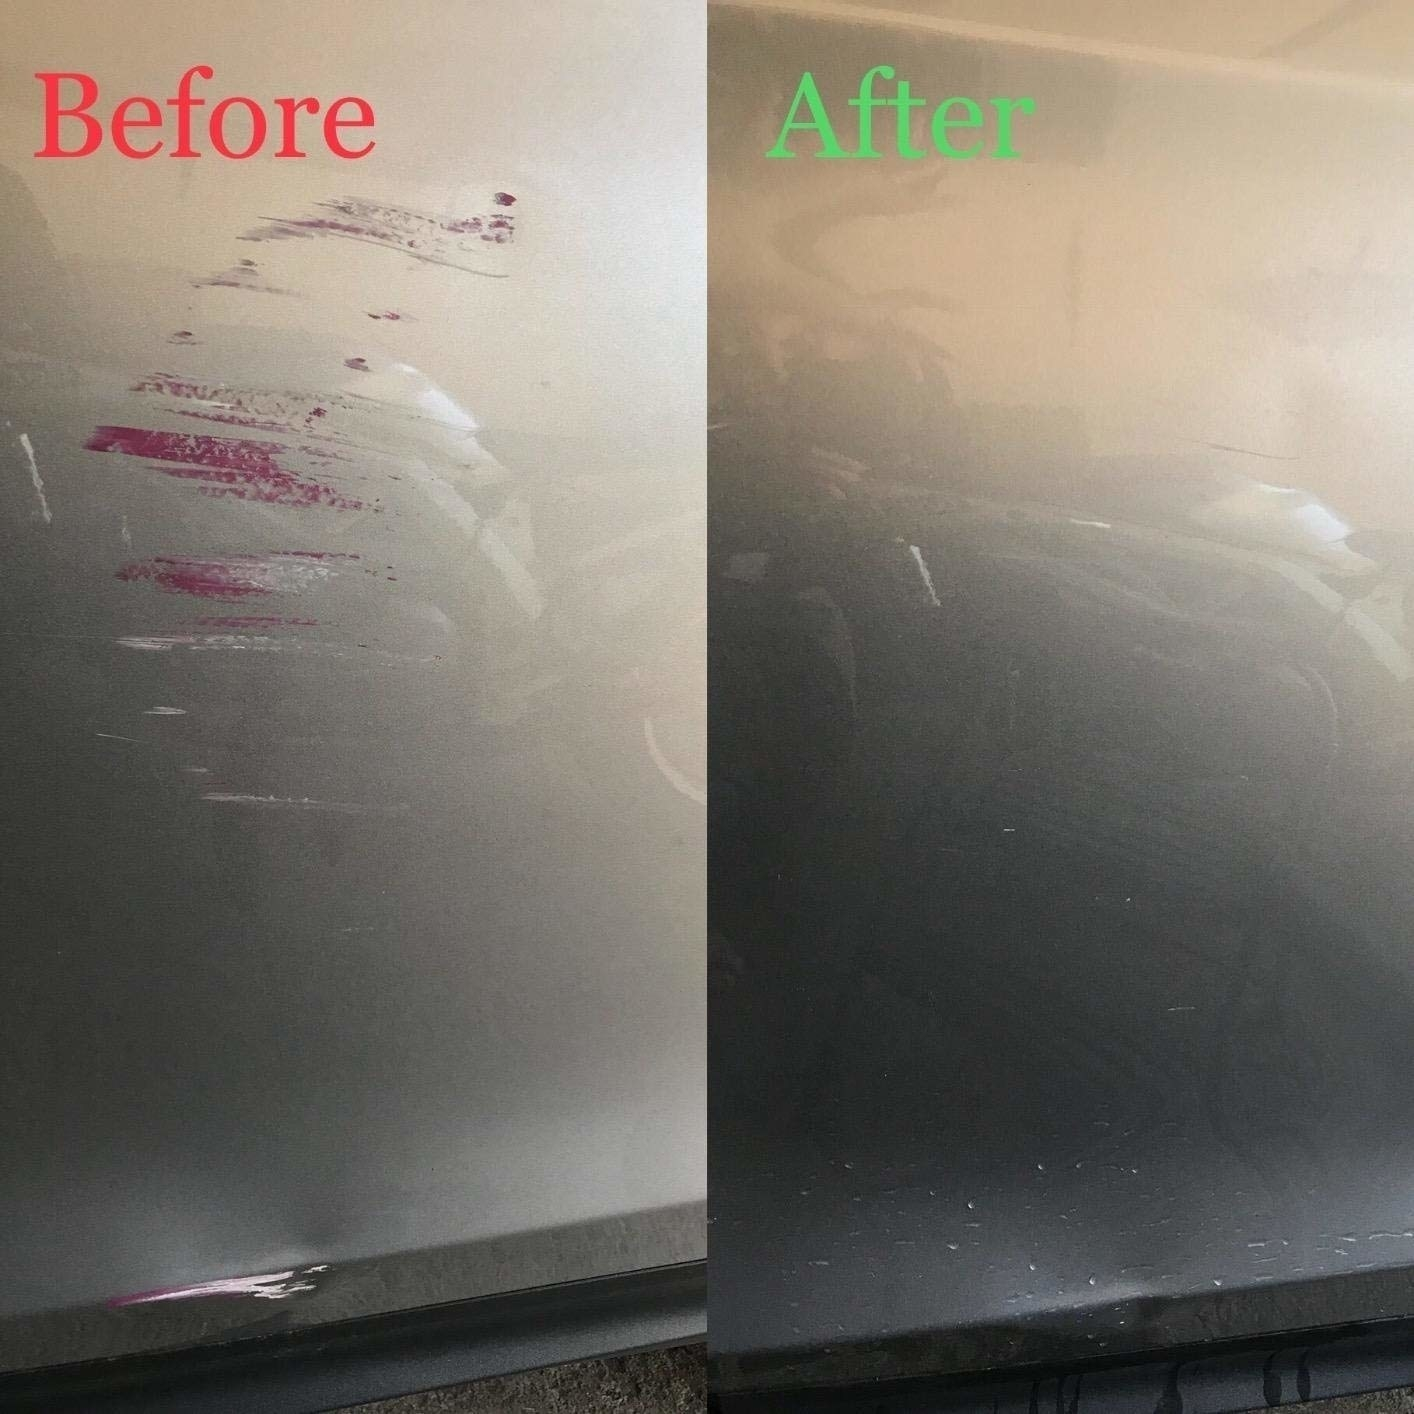 Reviewer photos showing a scratched car door before and after applying the remover. The scratches are 90% gone